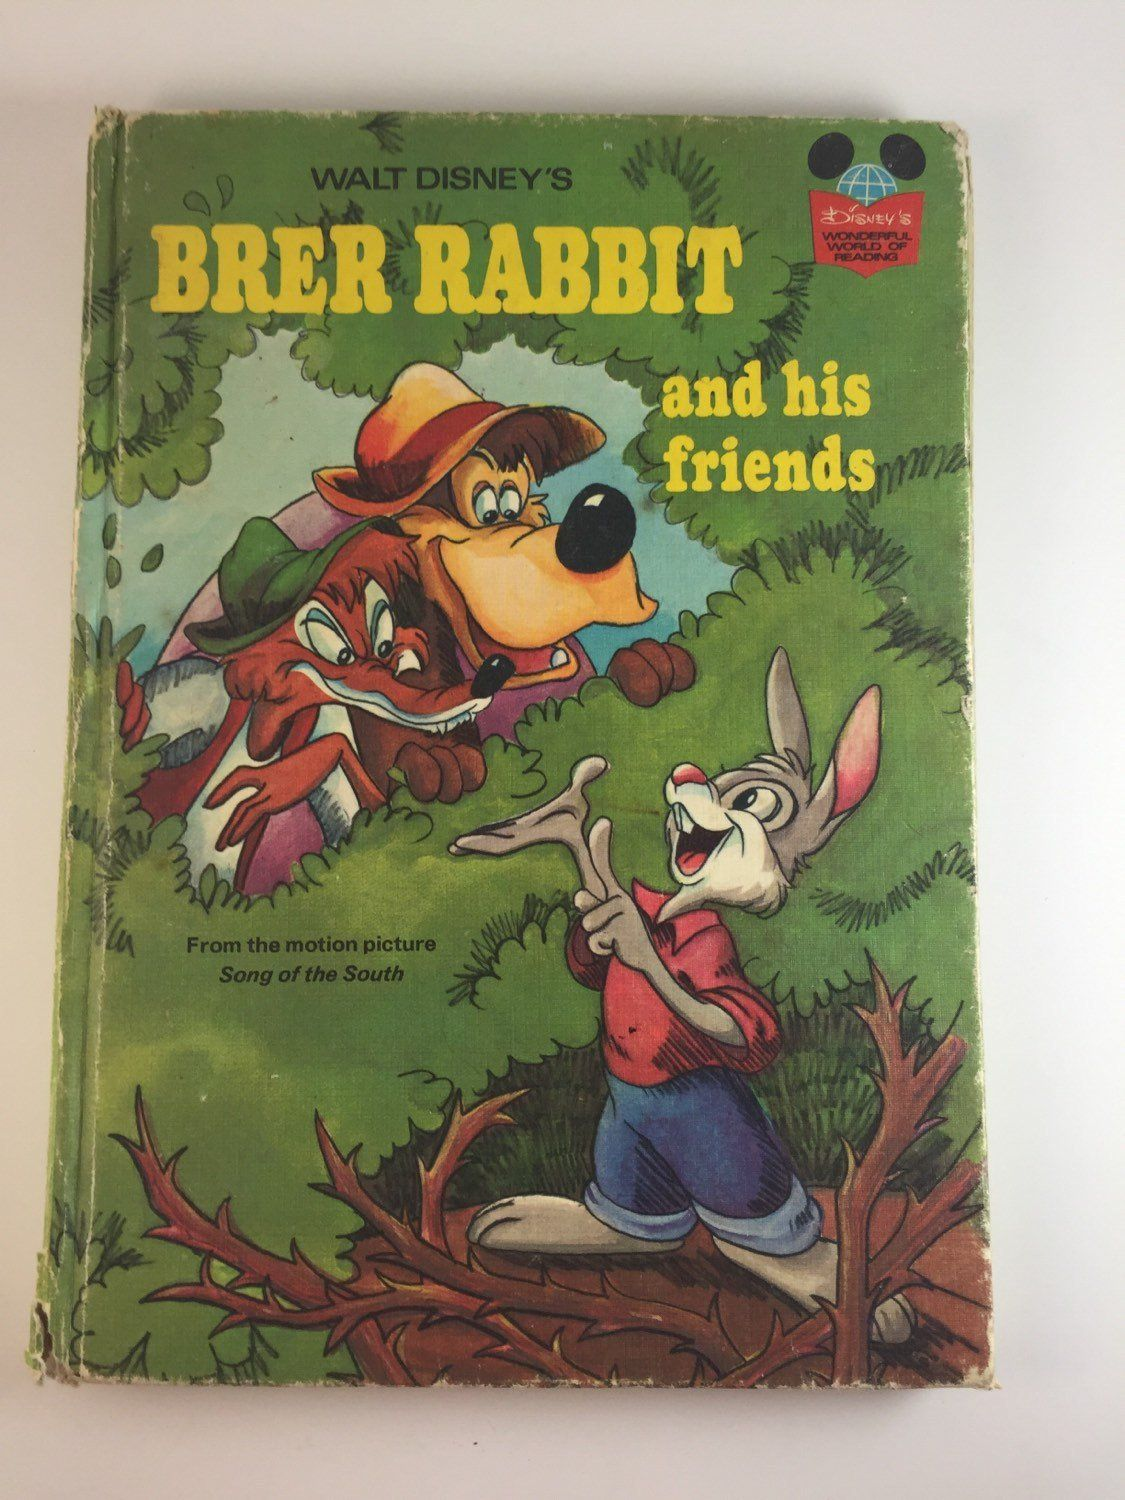 Walt Disney S Brer Rabbit And His Friends 1973 Vintage Children S Book By Maggiemaesmemories On Etsy Vintagemagaz Disney Books Disney Book Club Vintage Disney